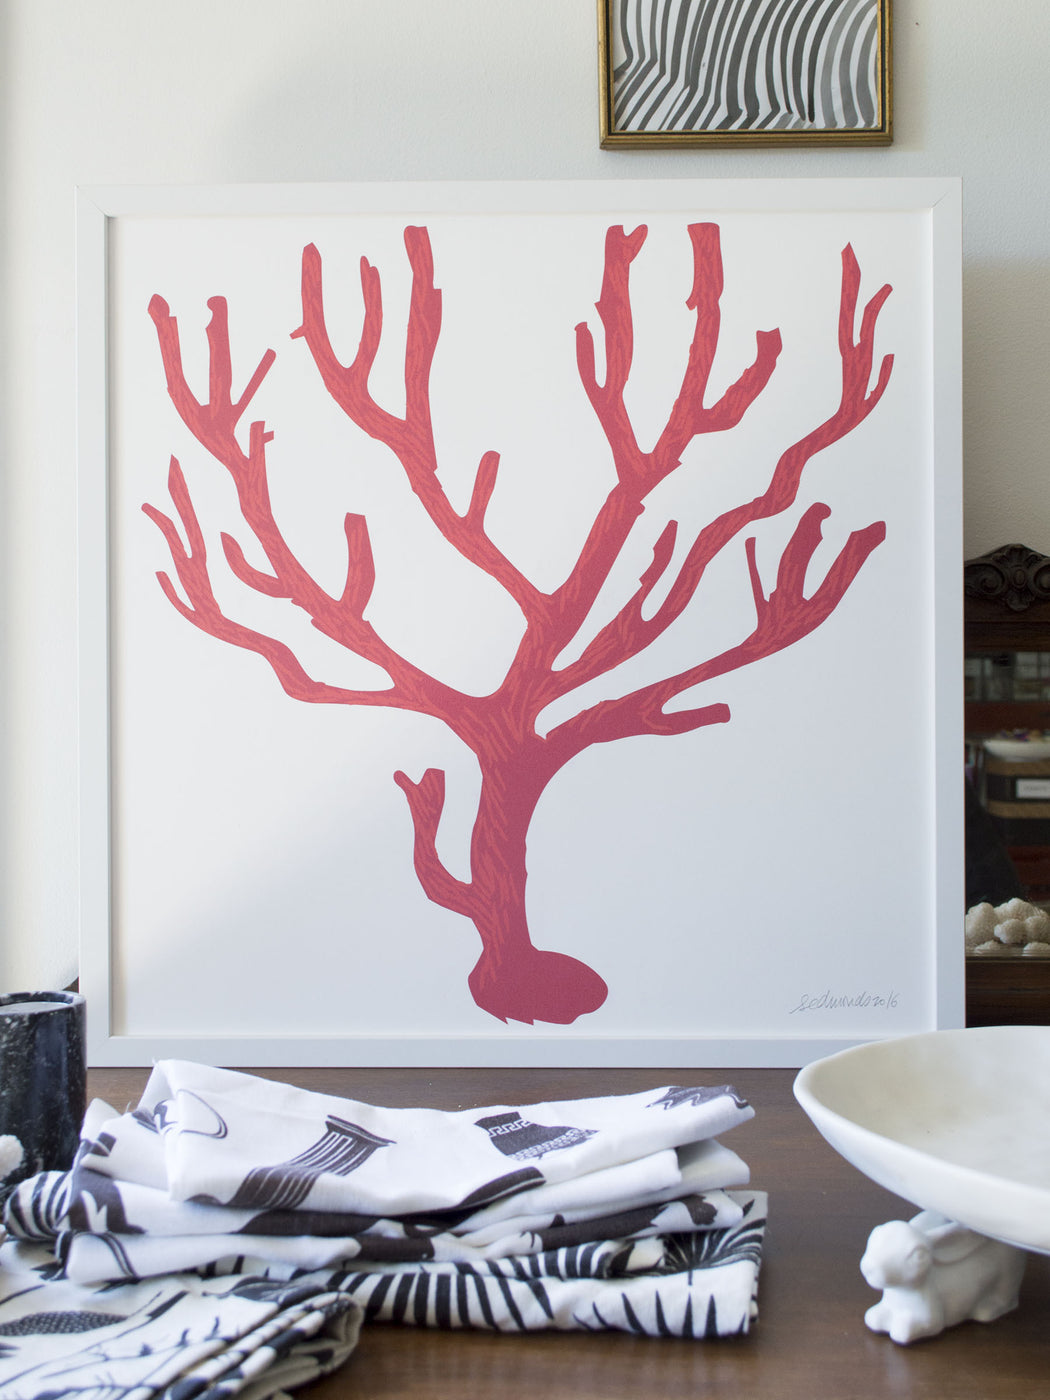 Banquet's framed Italian red coral screenprint with folded table linens.